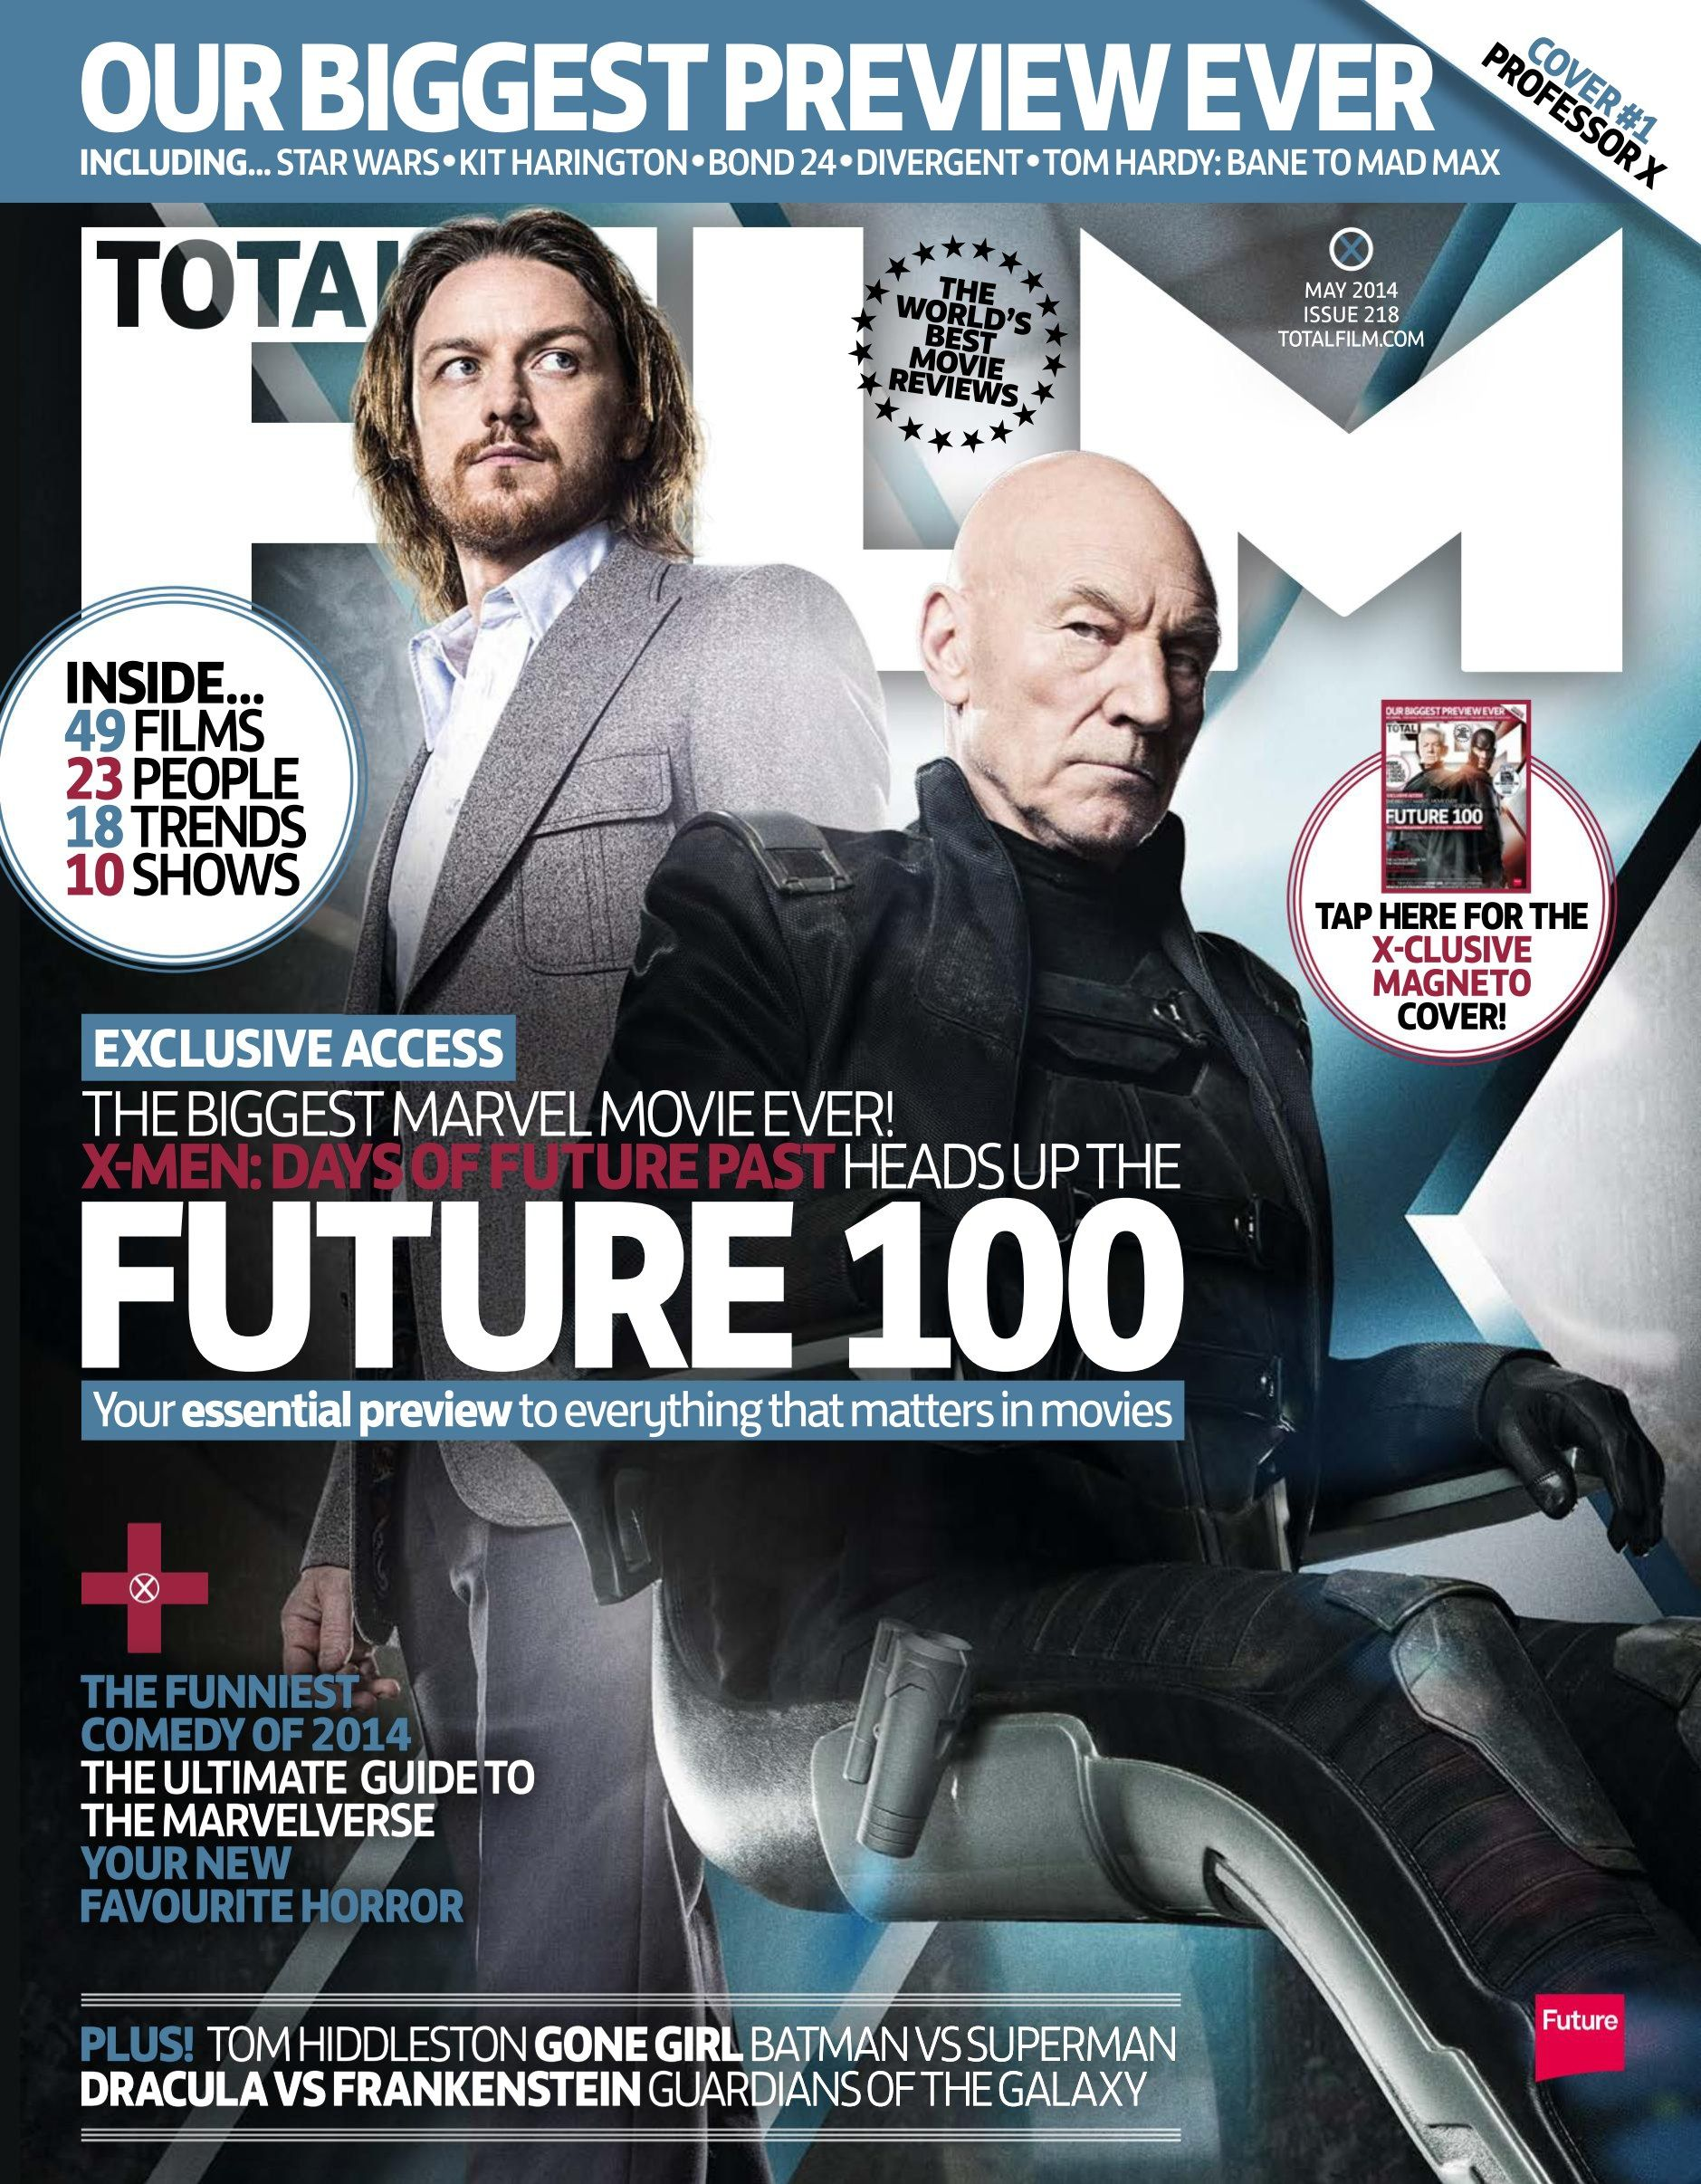 Cover Total Film Magazine 218 February 2014 Our Biggest Preview